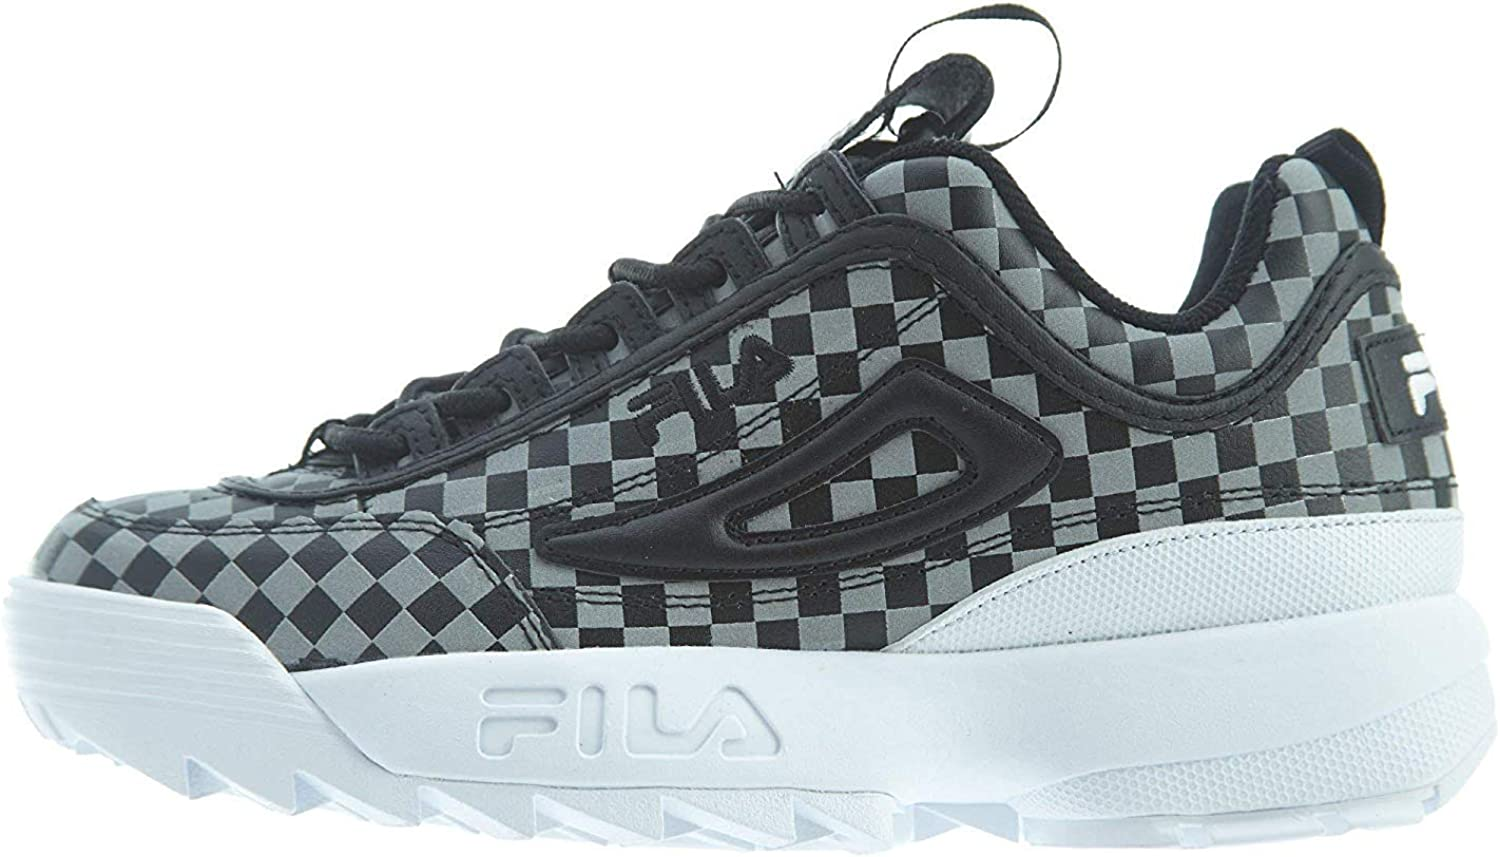 Fila Women's Disruptor II Sneaker (9.5, Checker- Black/Metallic Silver/White)